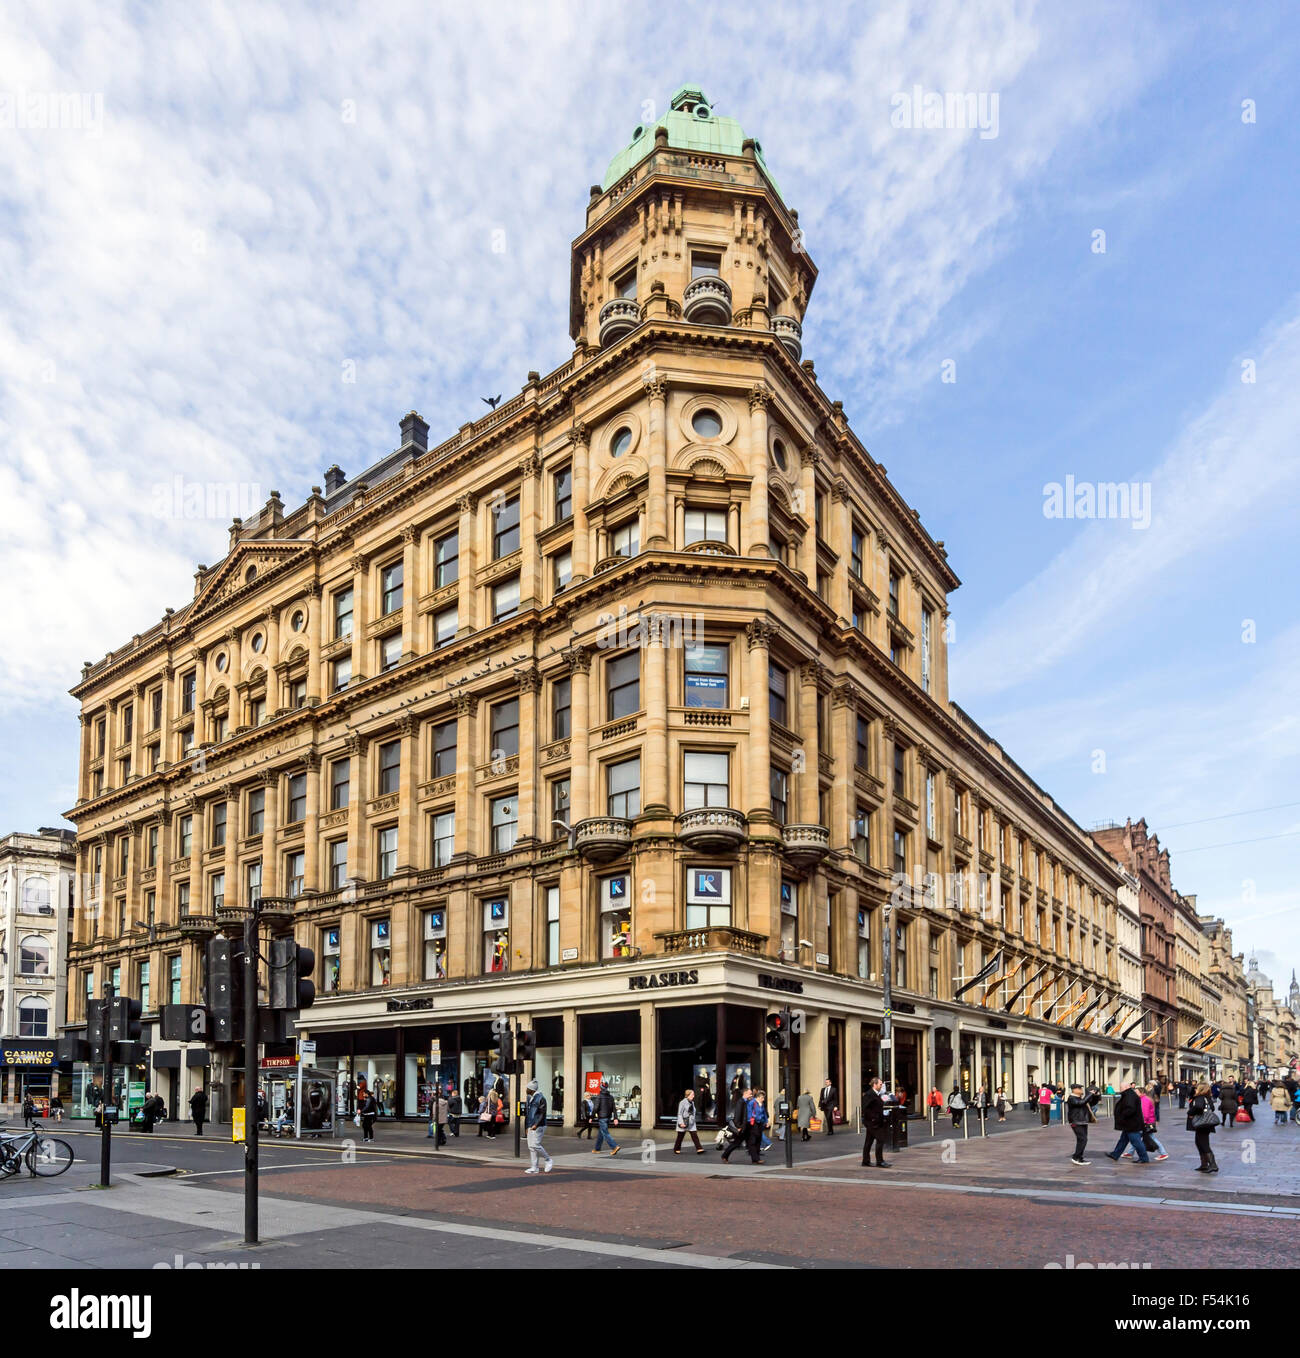 House of Fraser department store on the corner of Argyle Street and Buchanan Street in Glasgow Scotland - Stock Image